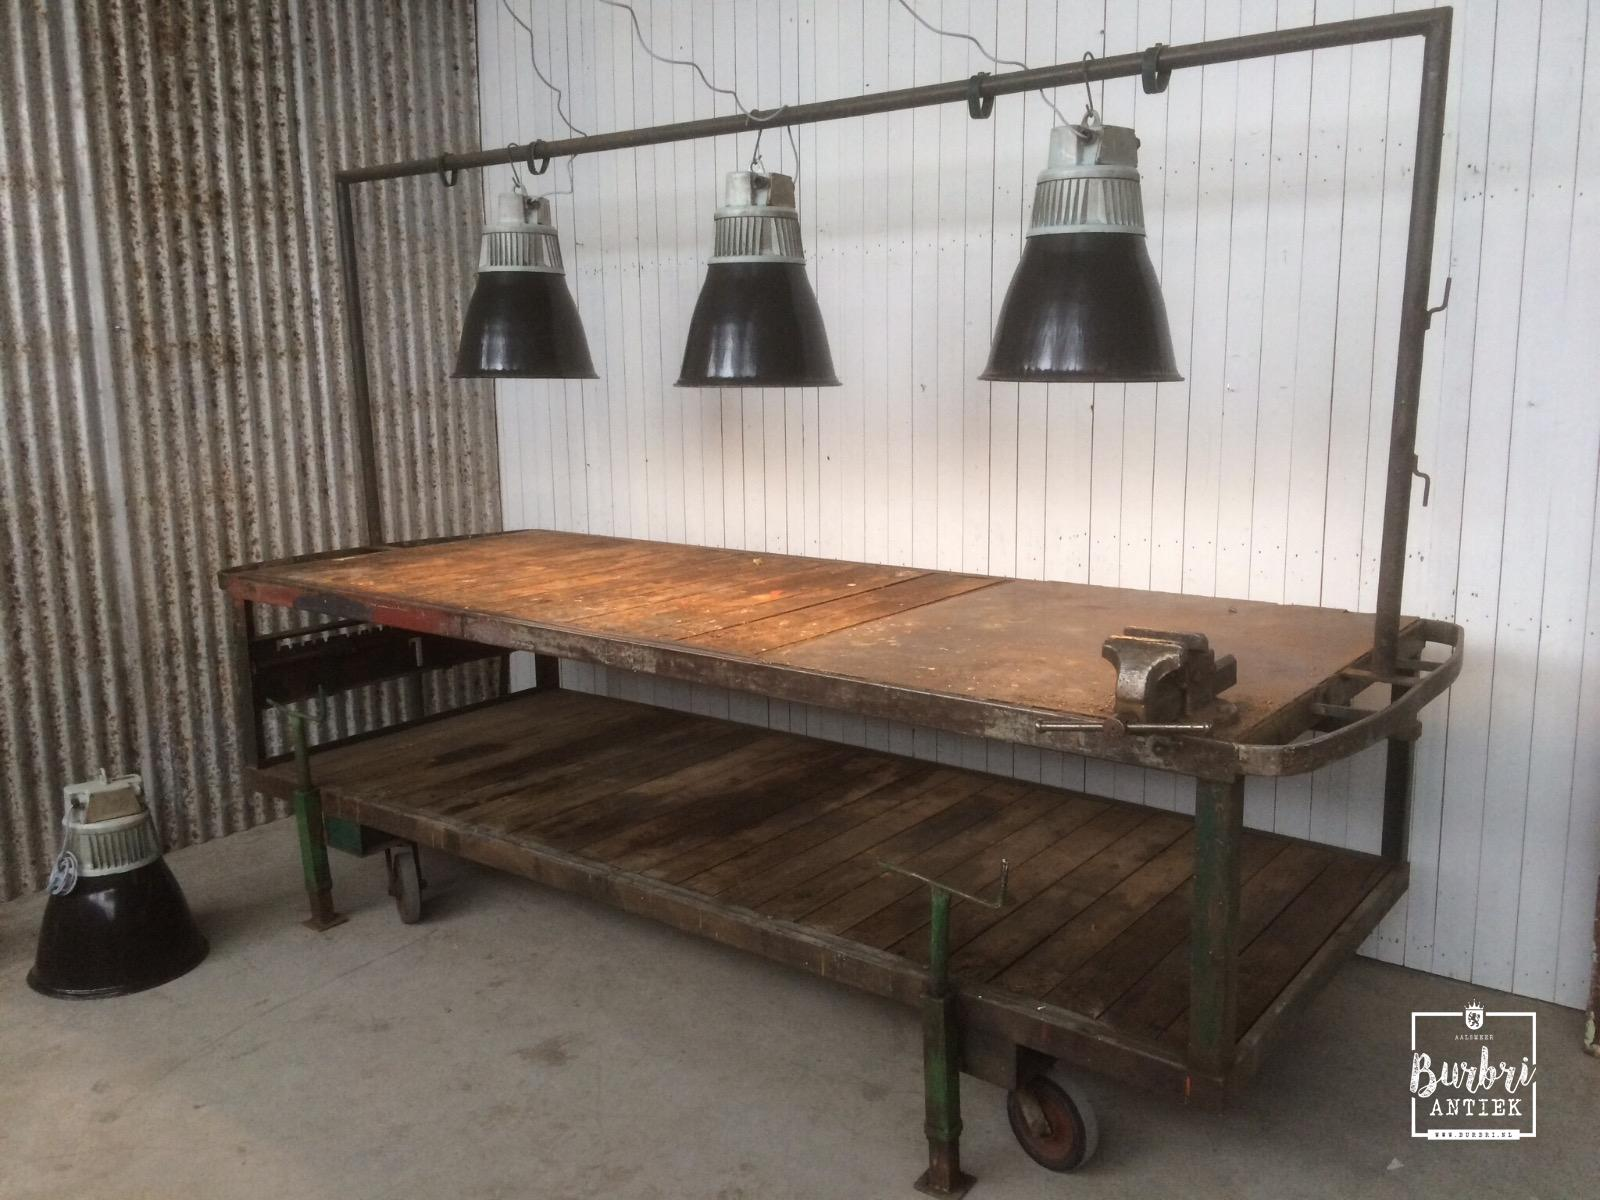 More Industrial old factory lamps Pendant light ...